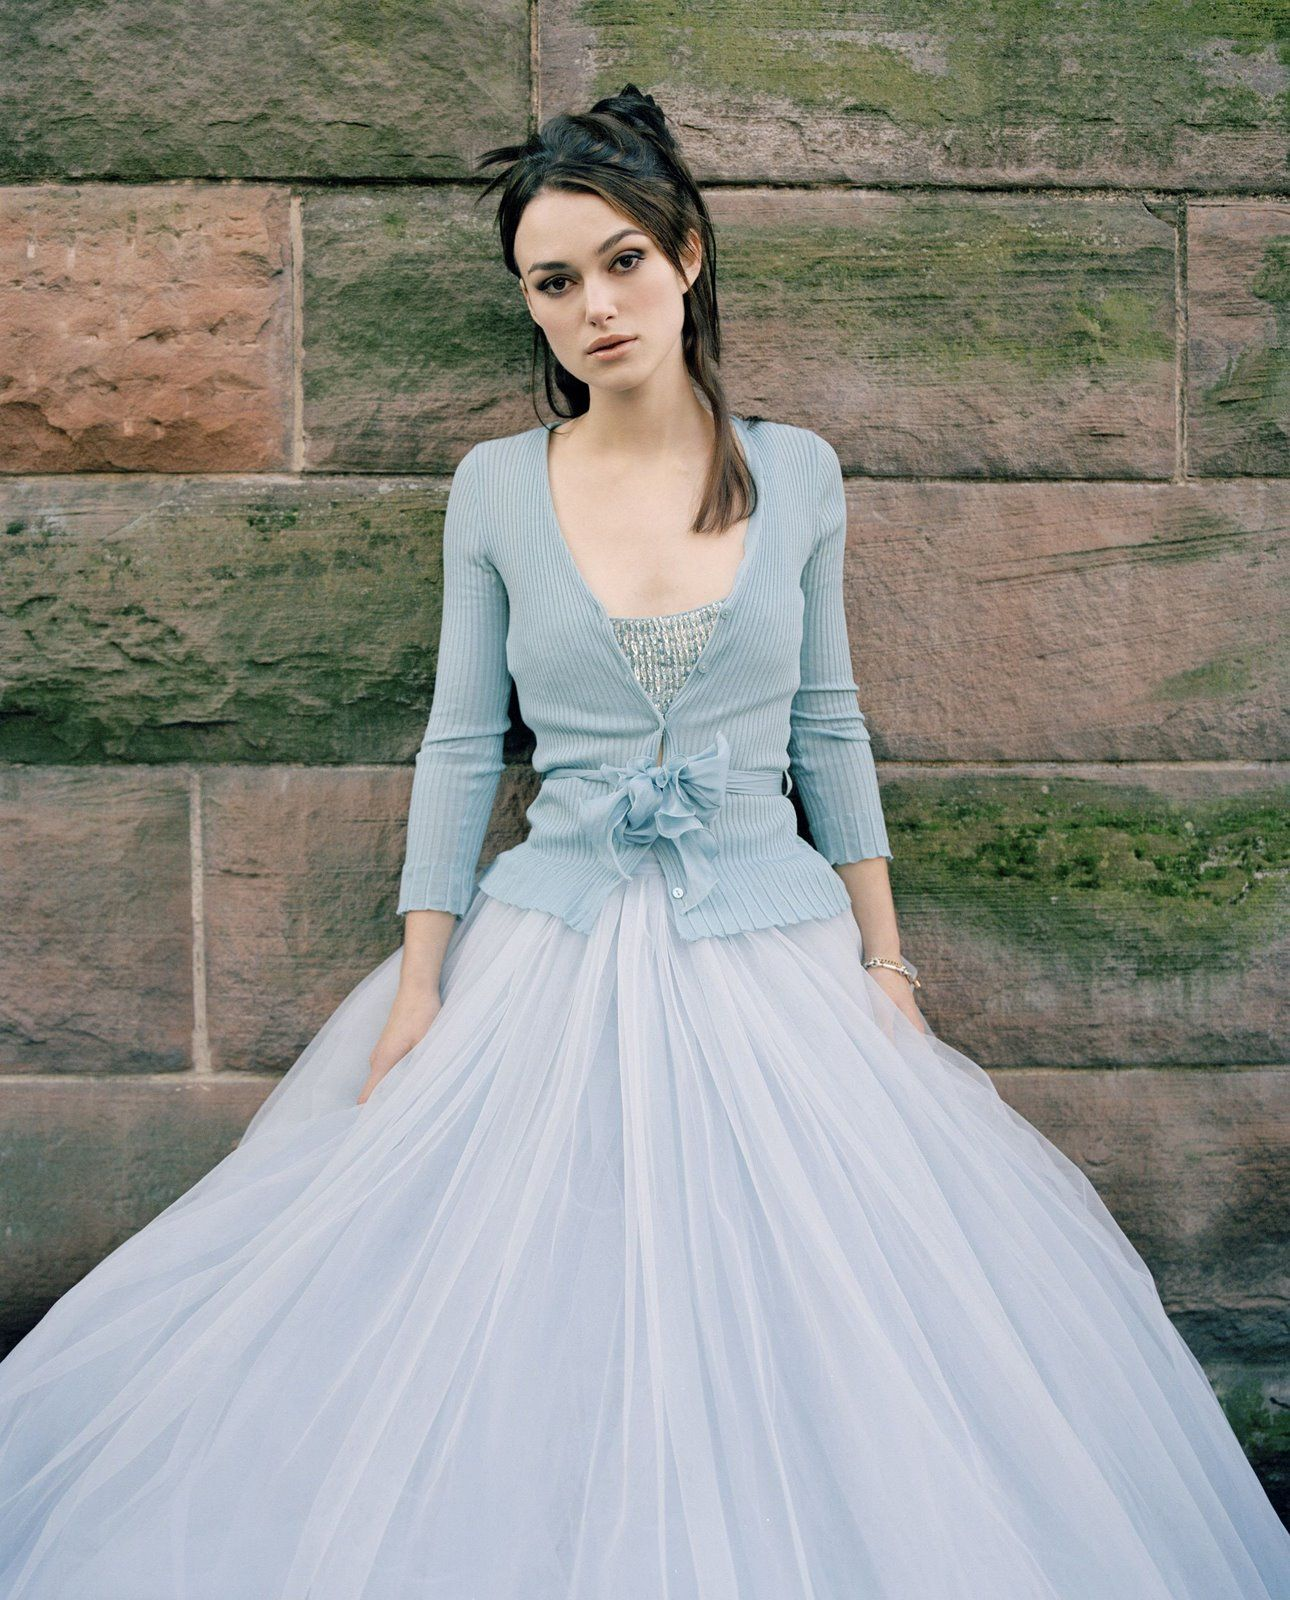 blue tulle || Keira Knightly by photographer Lorenzo Agius. | la ...